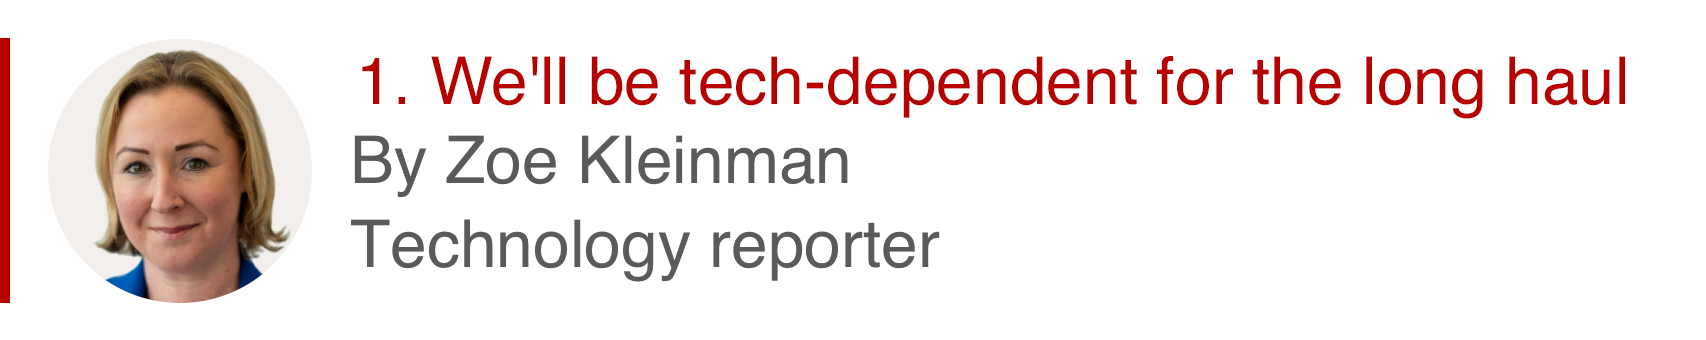 1. We'll be tech-dependent for the long haul. By Zoe Kleinman, technology reporter